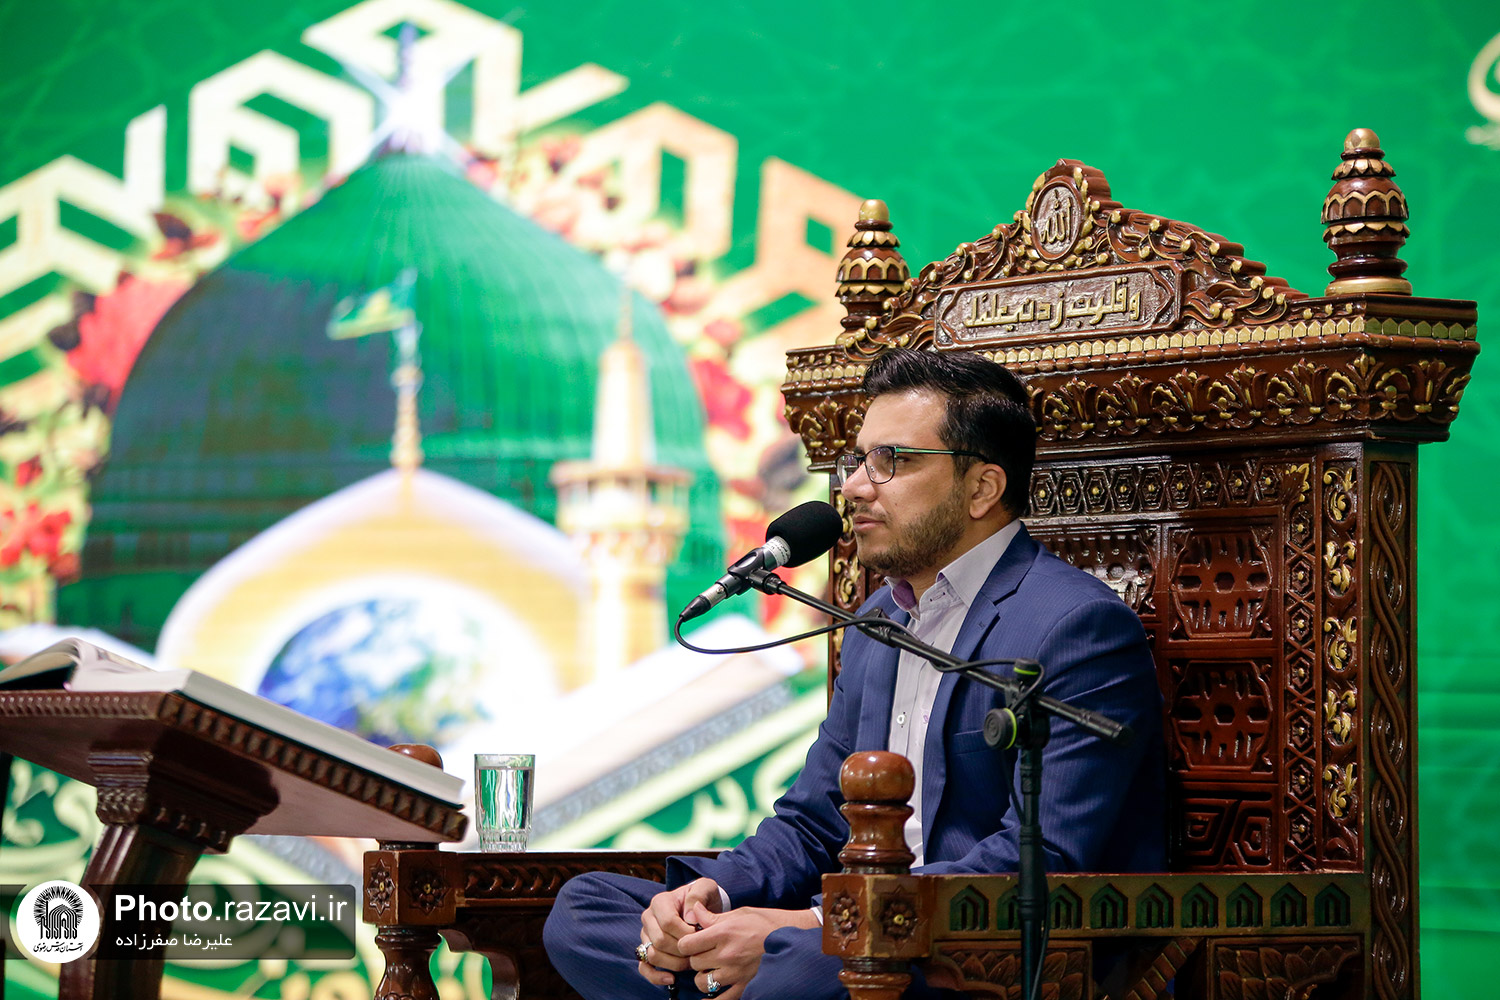 Chair of Razavi recitation for Mabaath of the Prophet (pbuh)